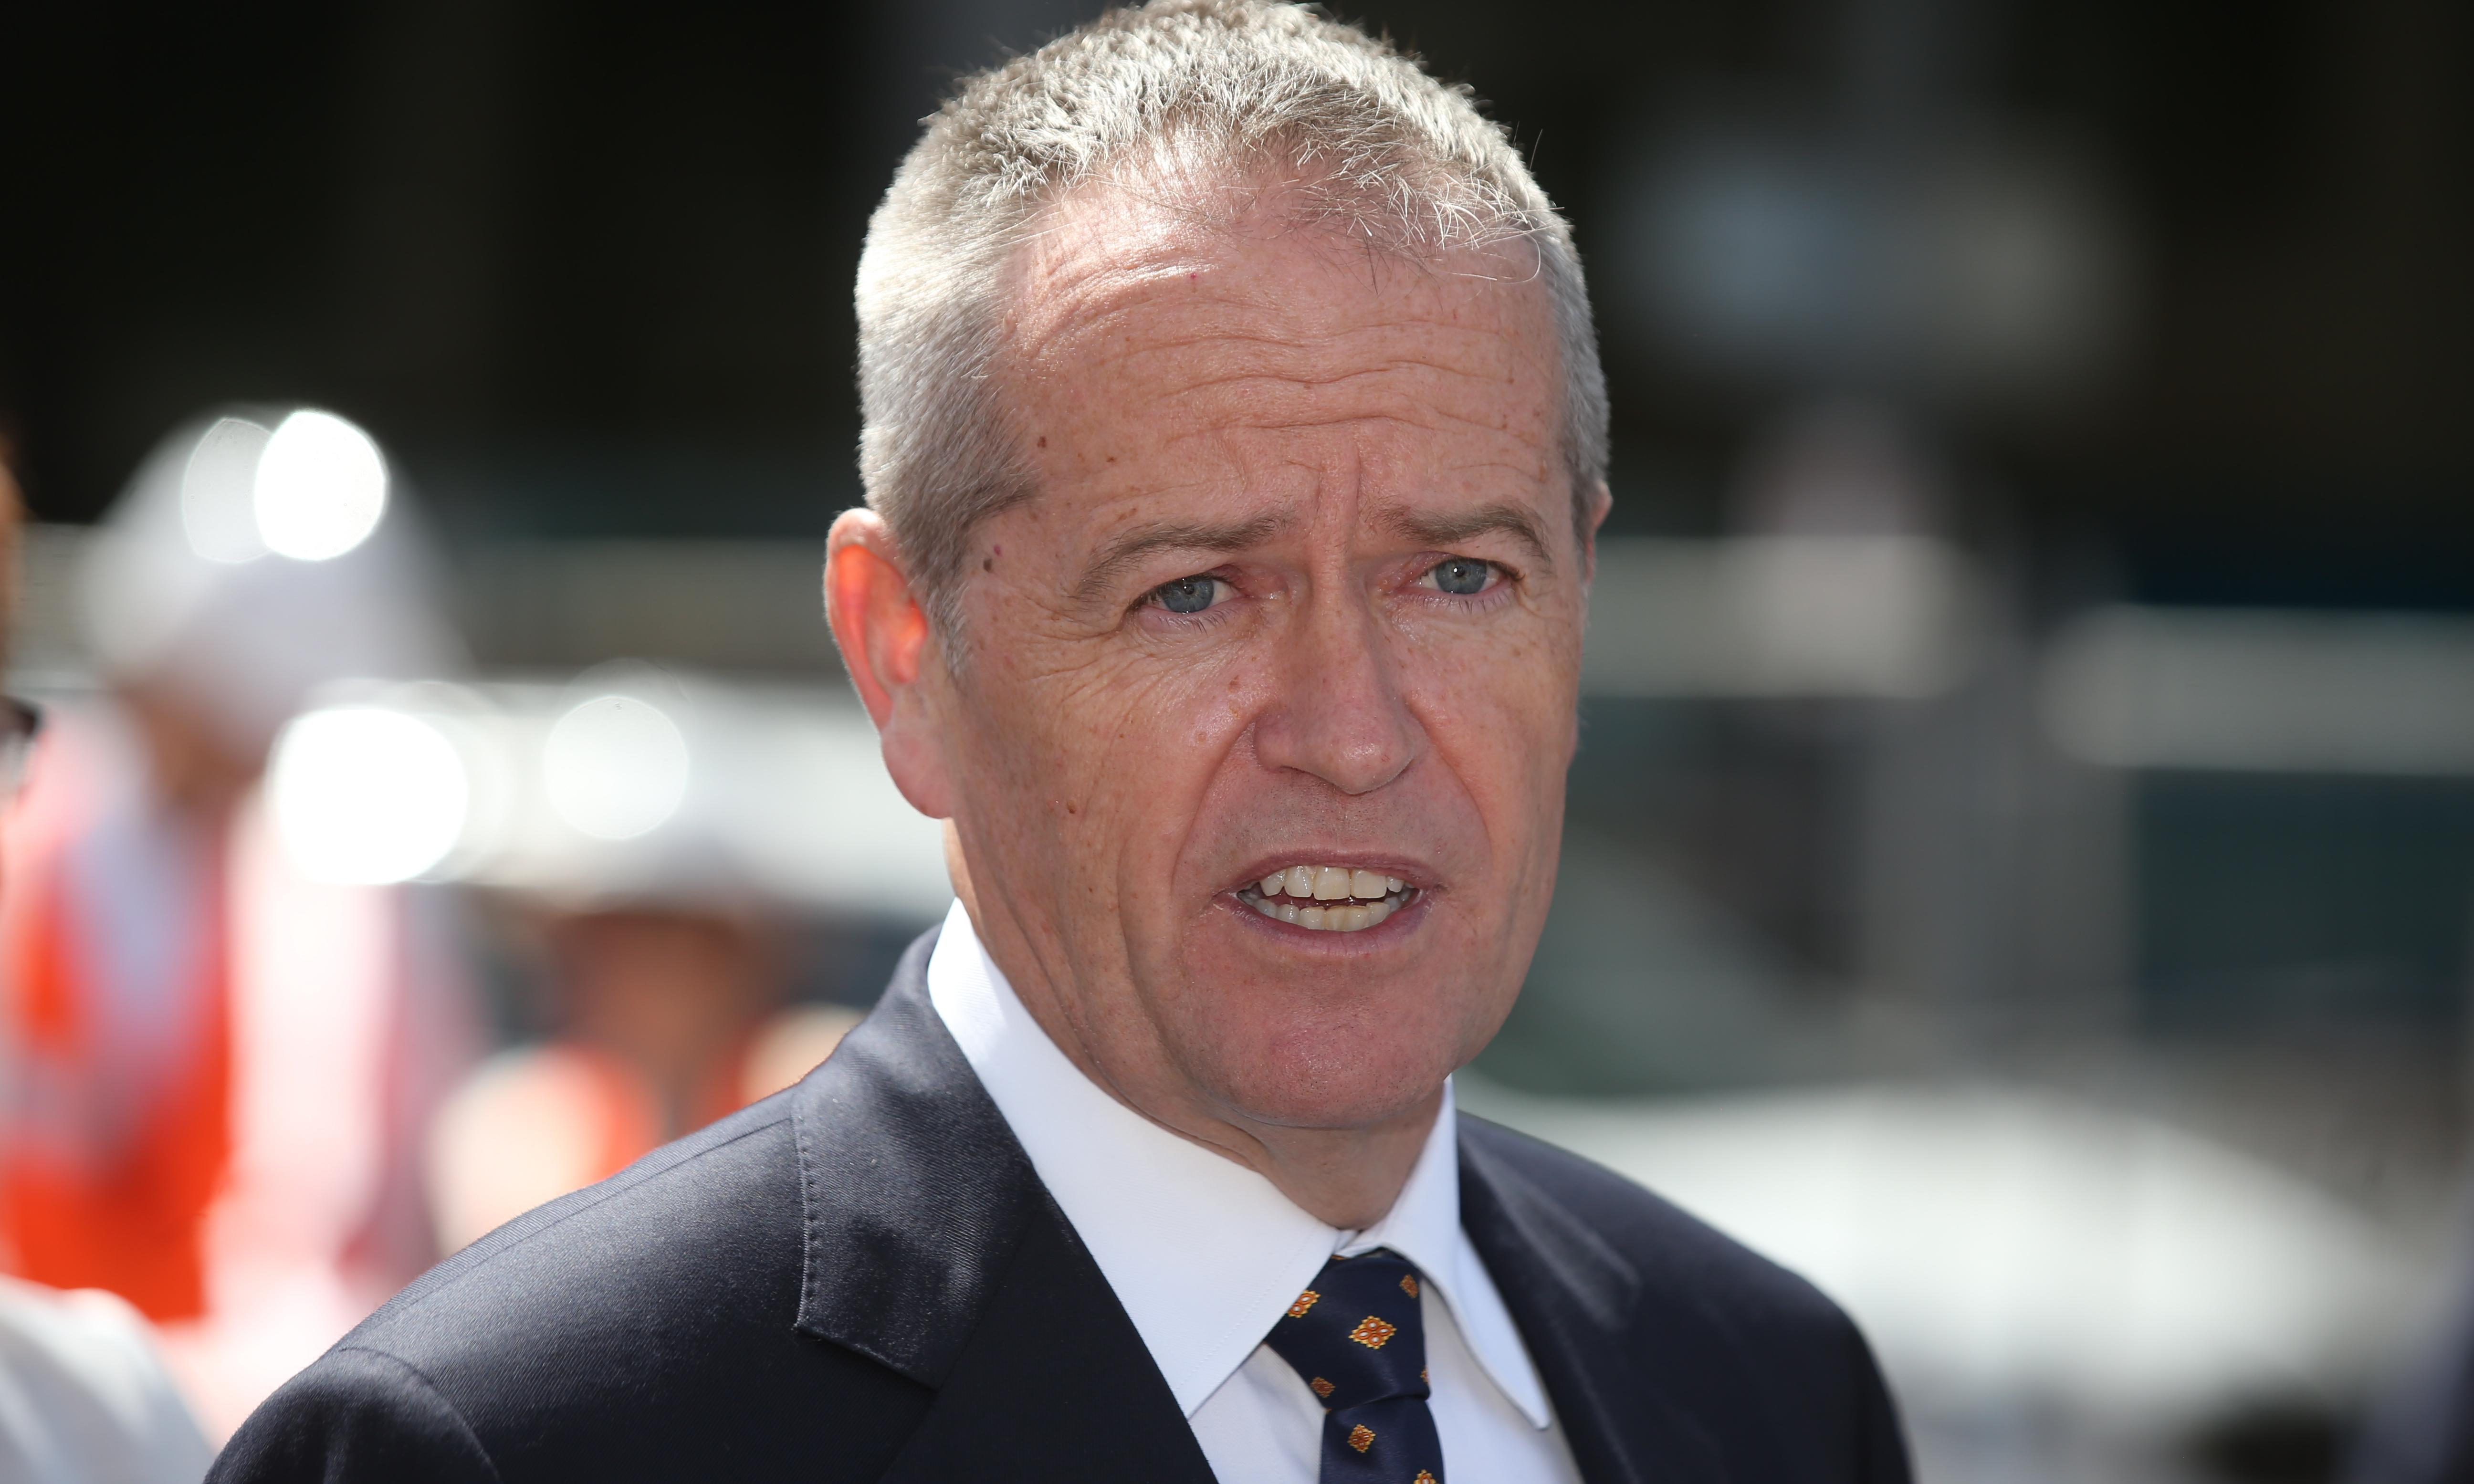 Labor pledges $1bn to upgrade neglected public hospital facilities